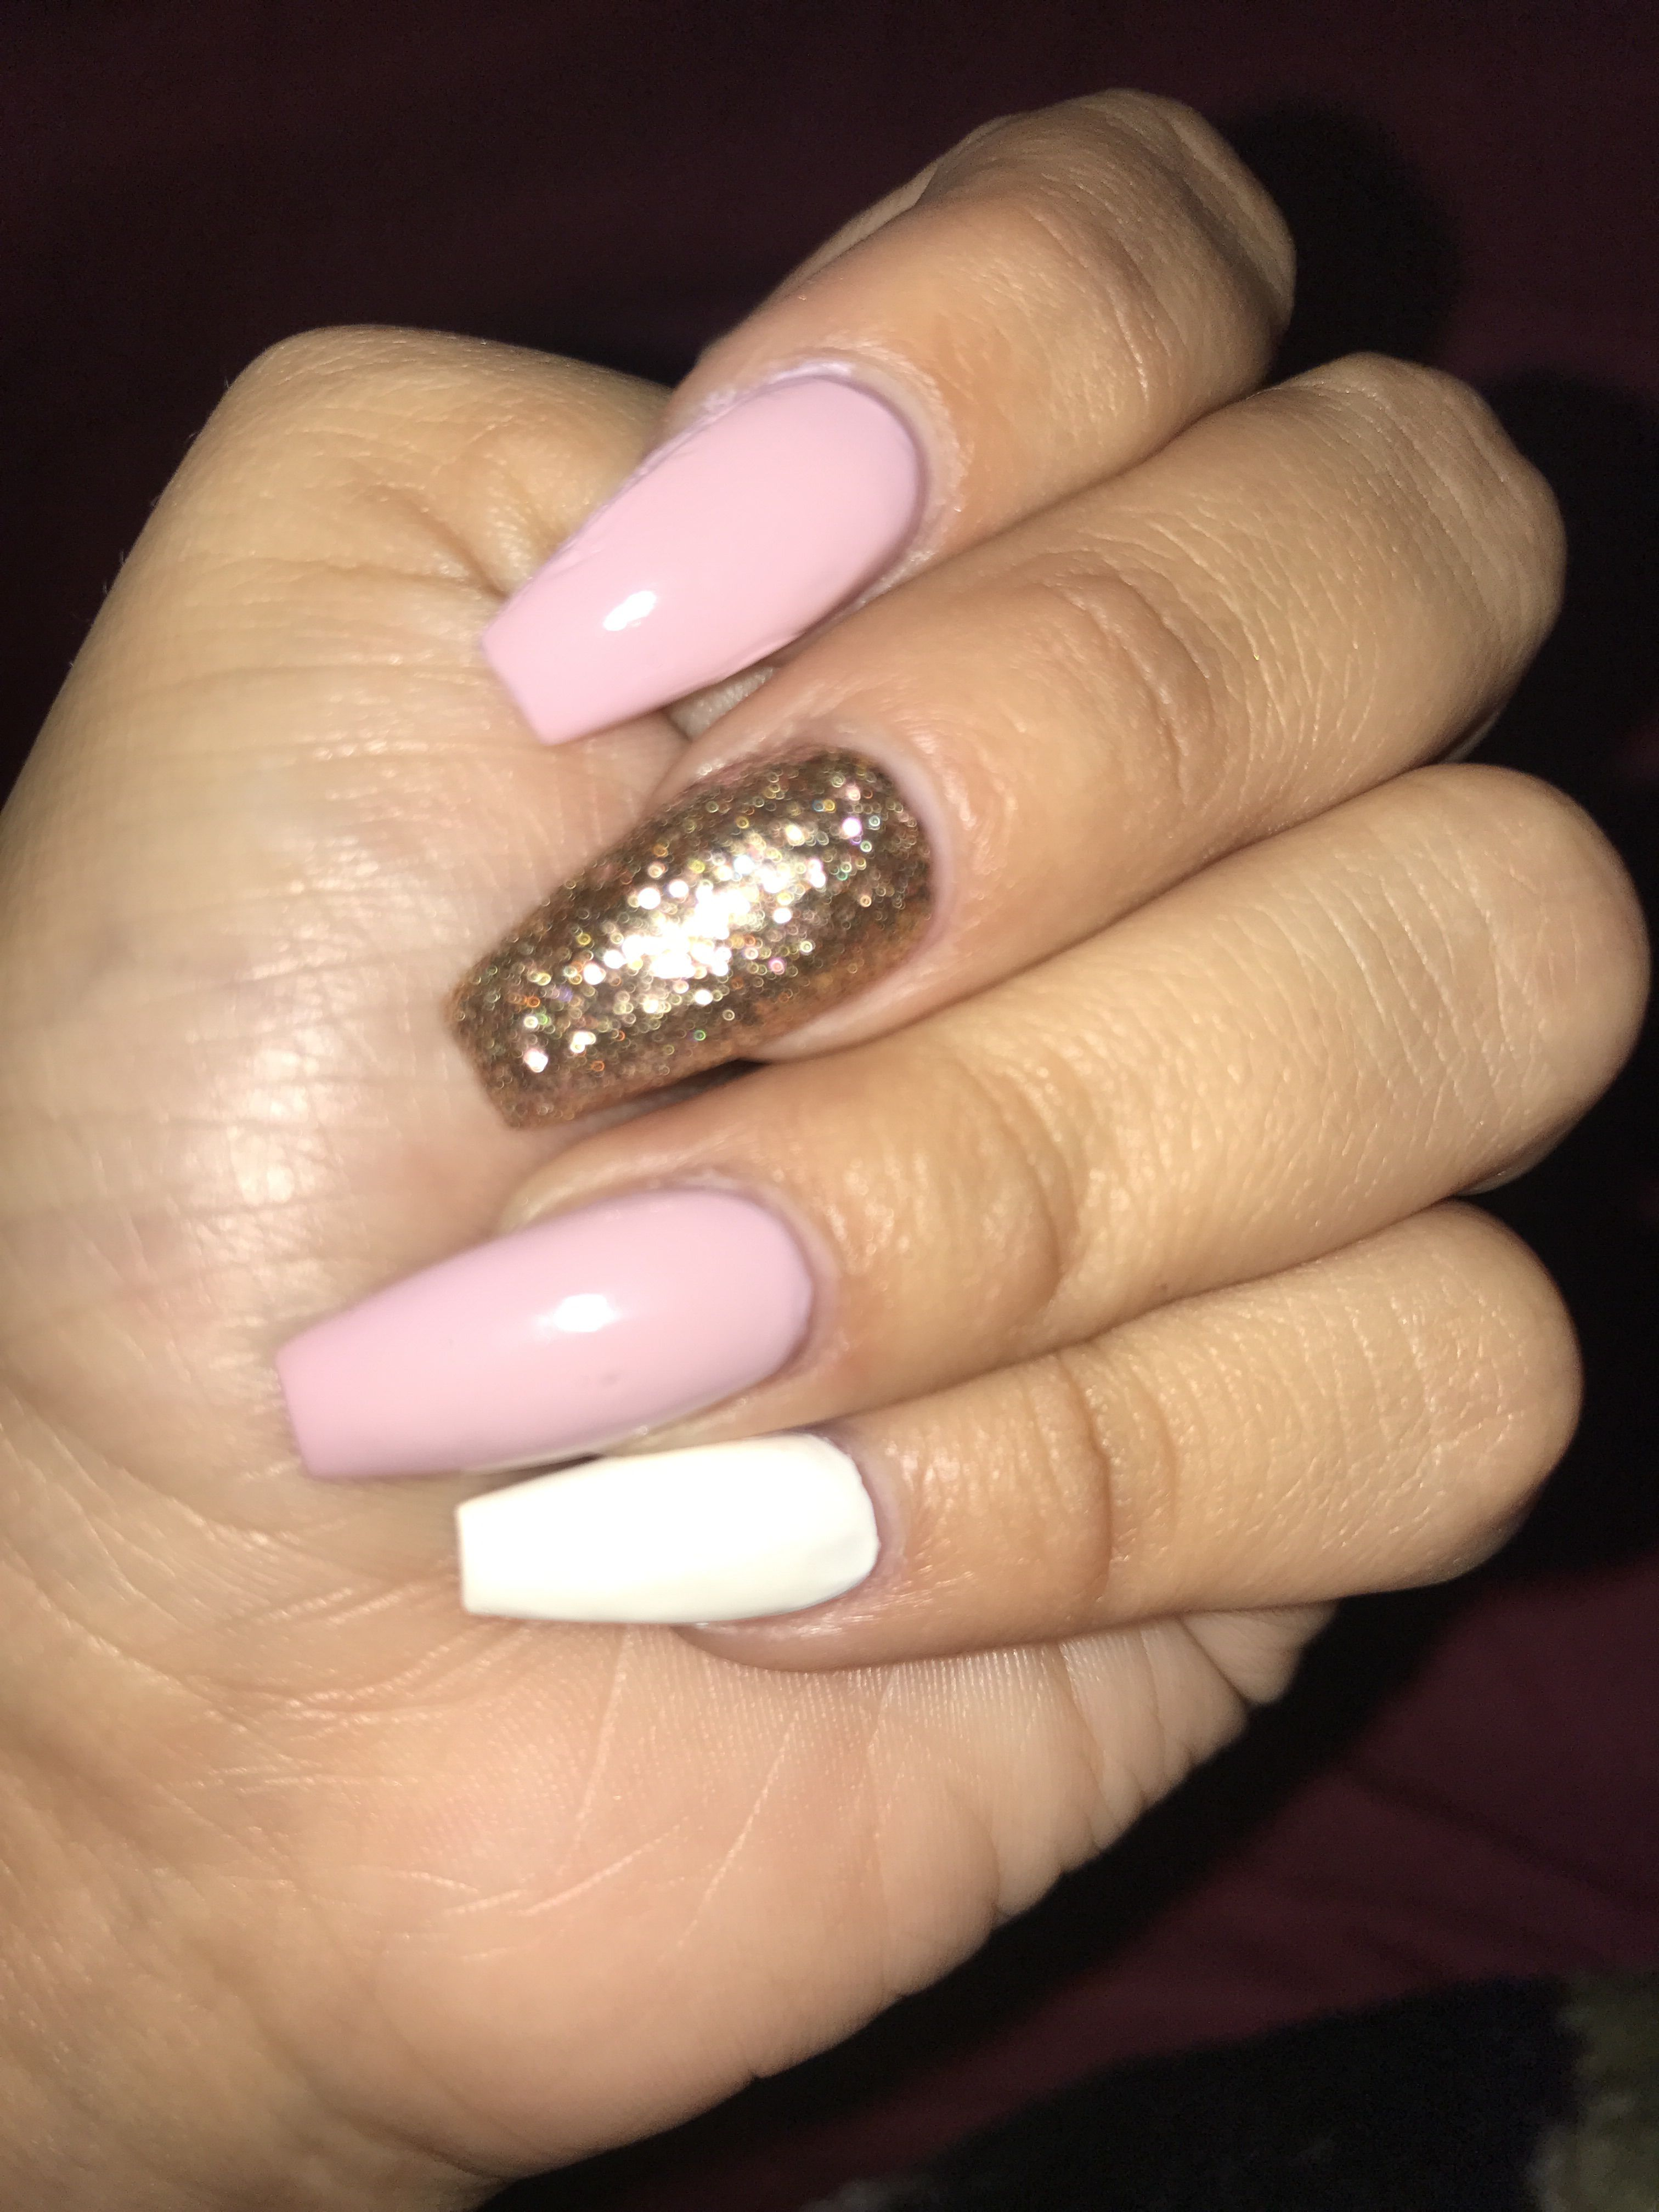 Pin by nicolle soto on Nails | Pinterest | Coffin nails, Beauty ...